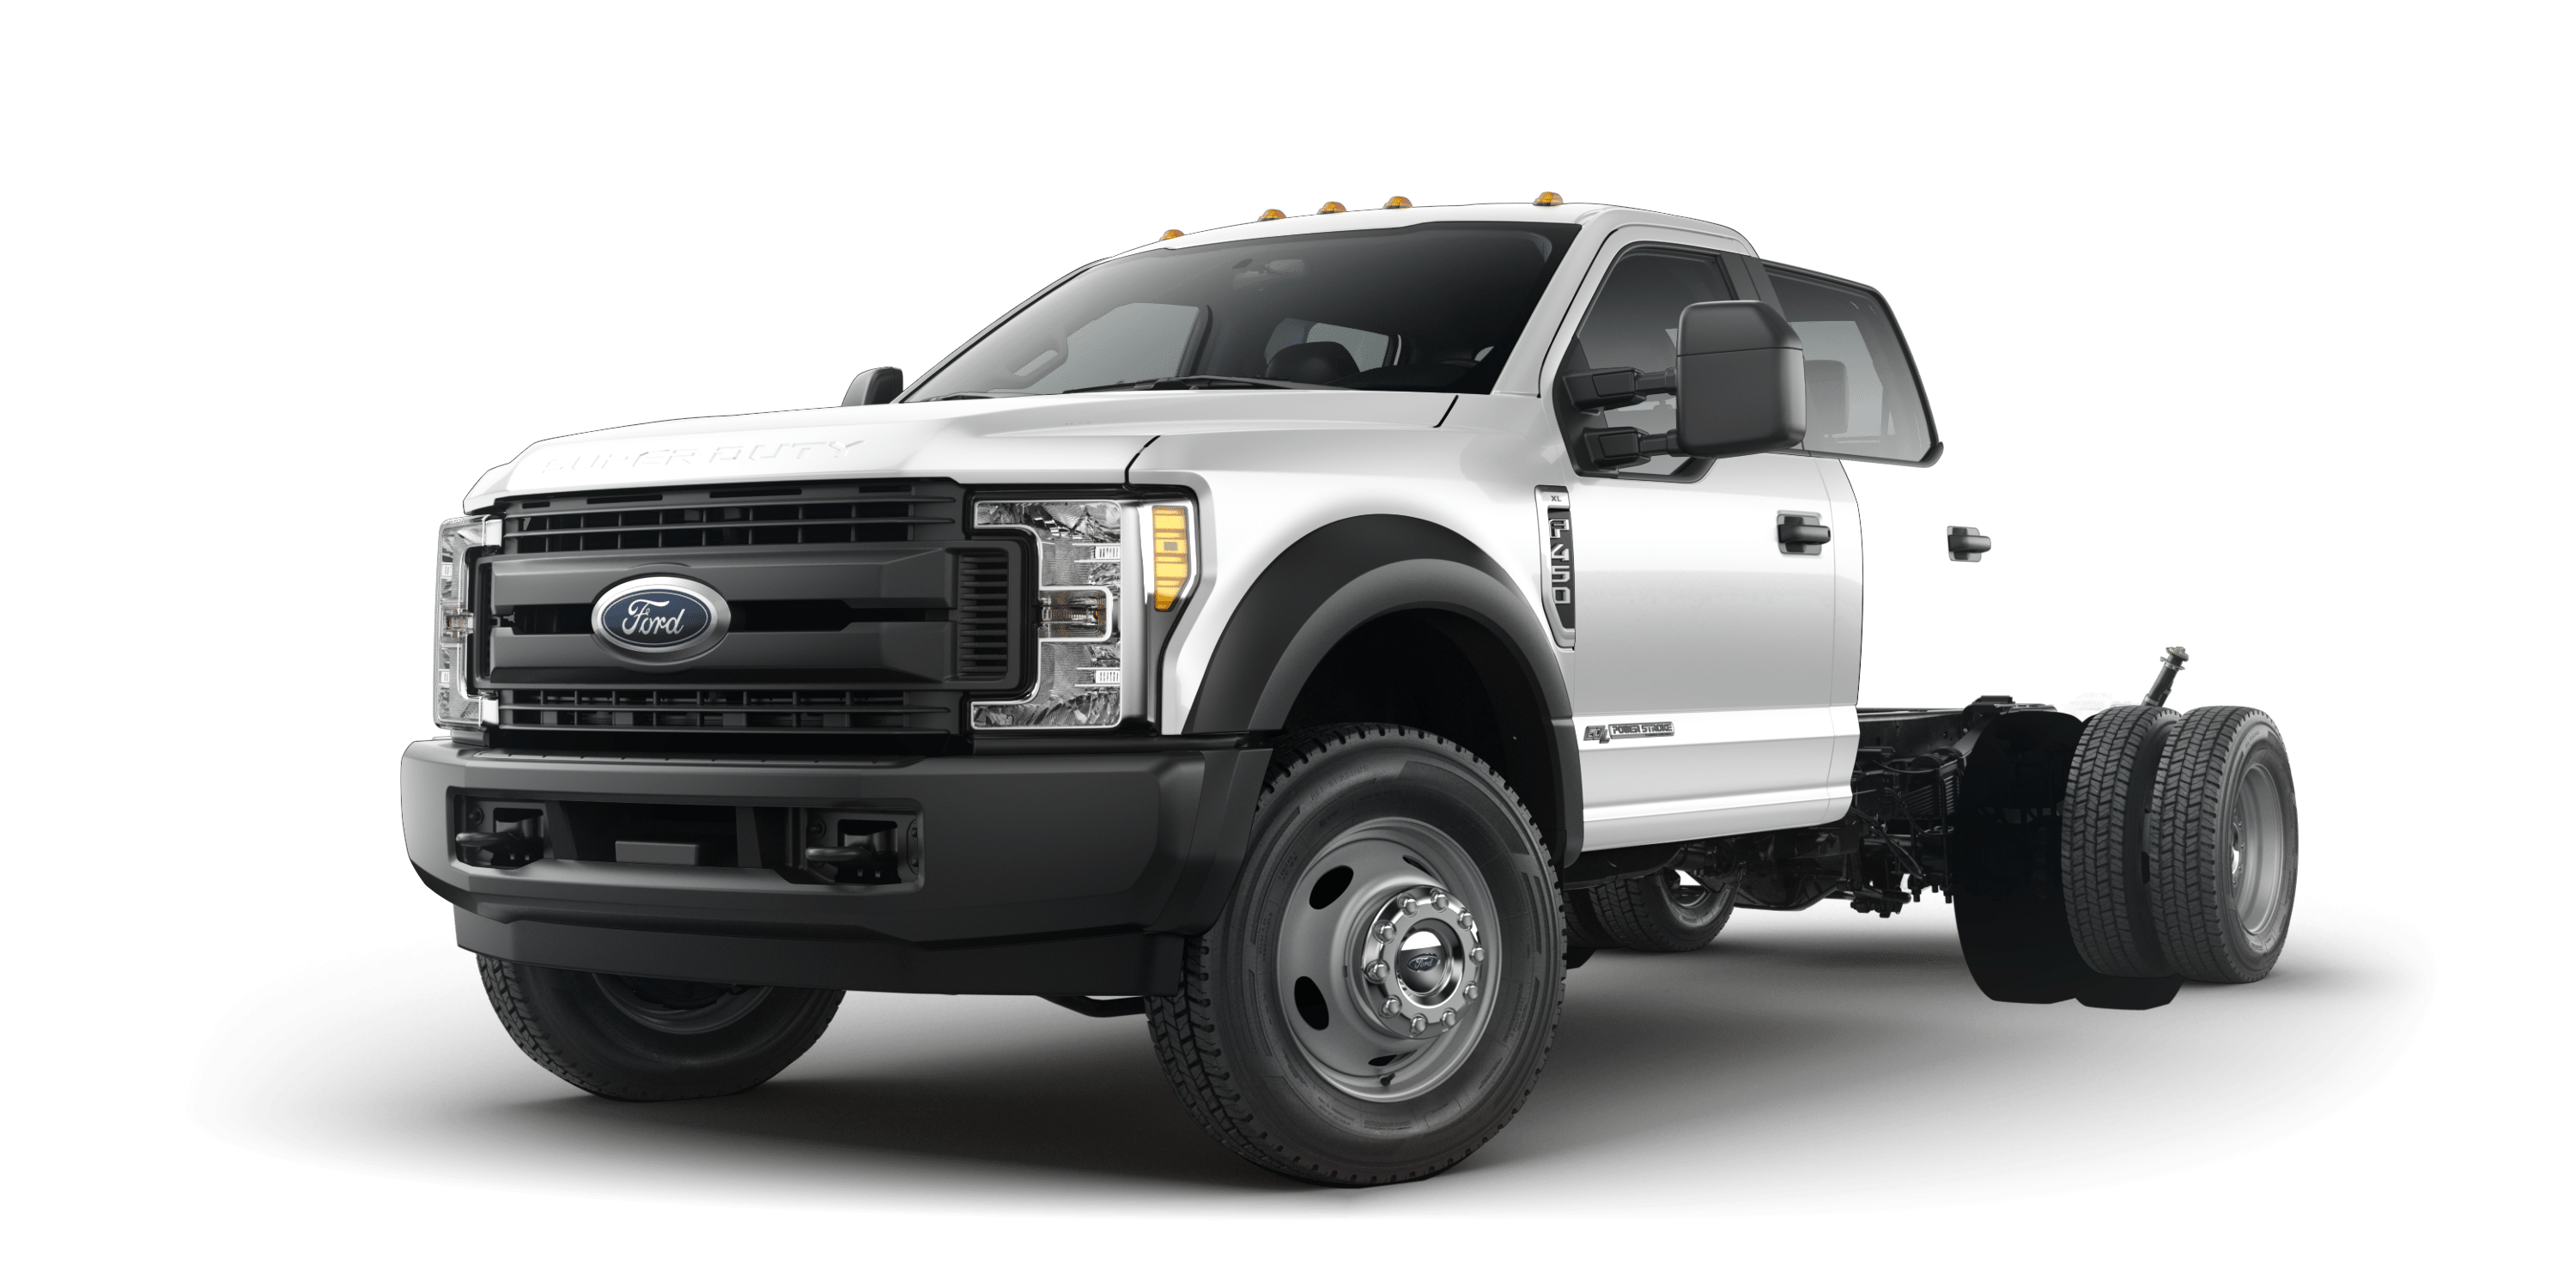 New Ford Super Duty F 450 DRW Vehicles for Sale in Quakertown near